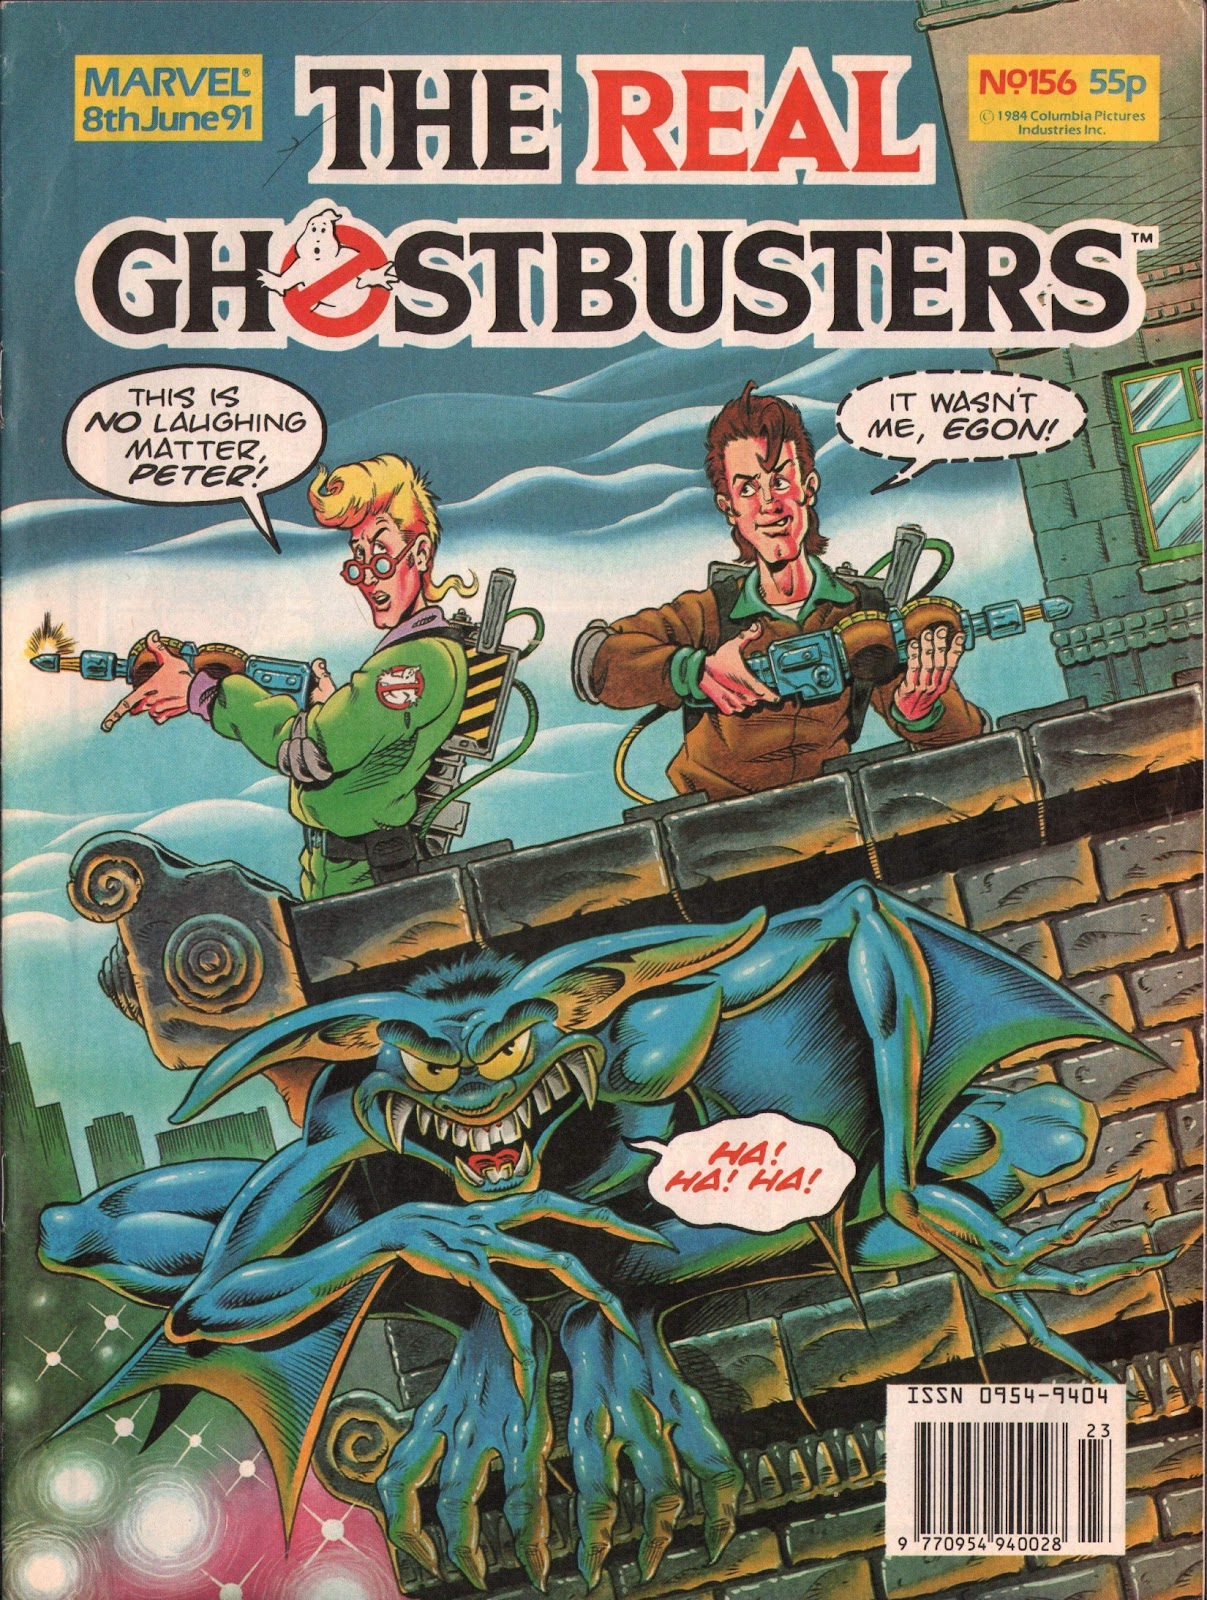 The Real Ghostbusters 156 Page 1